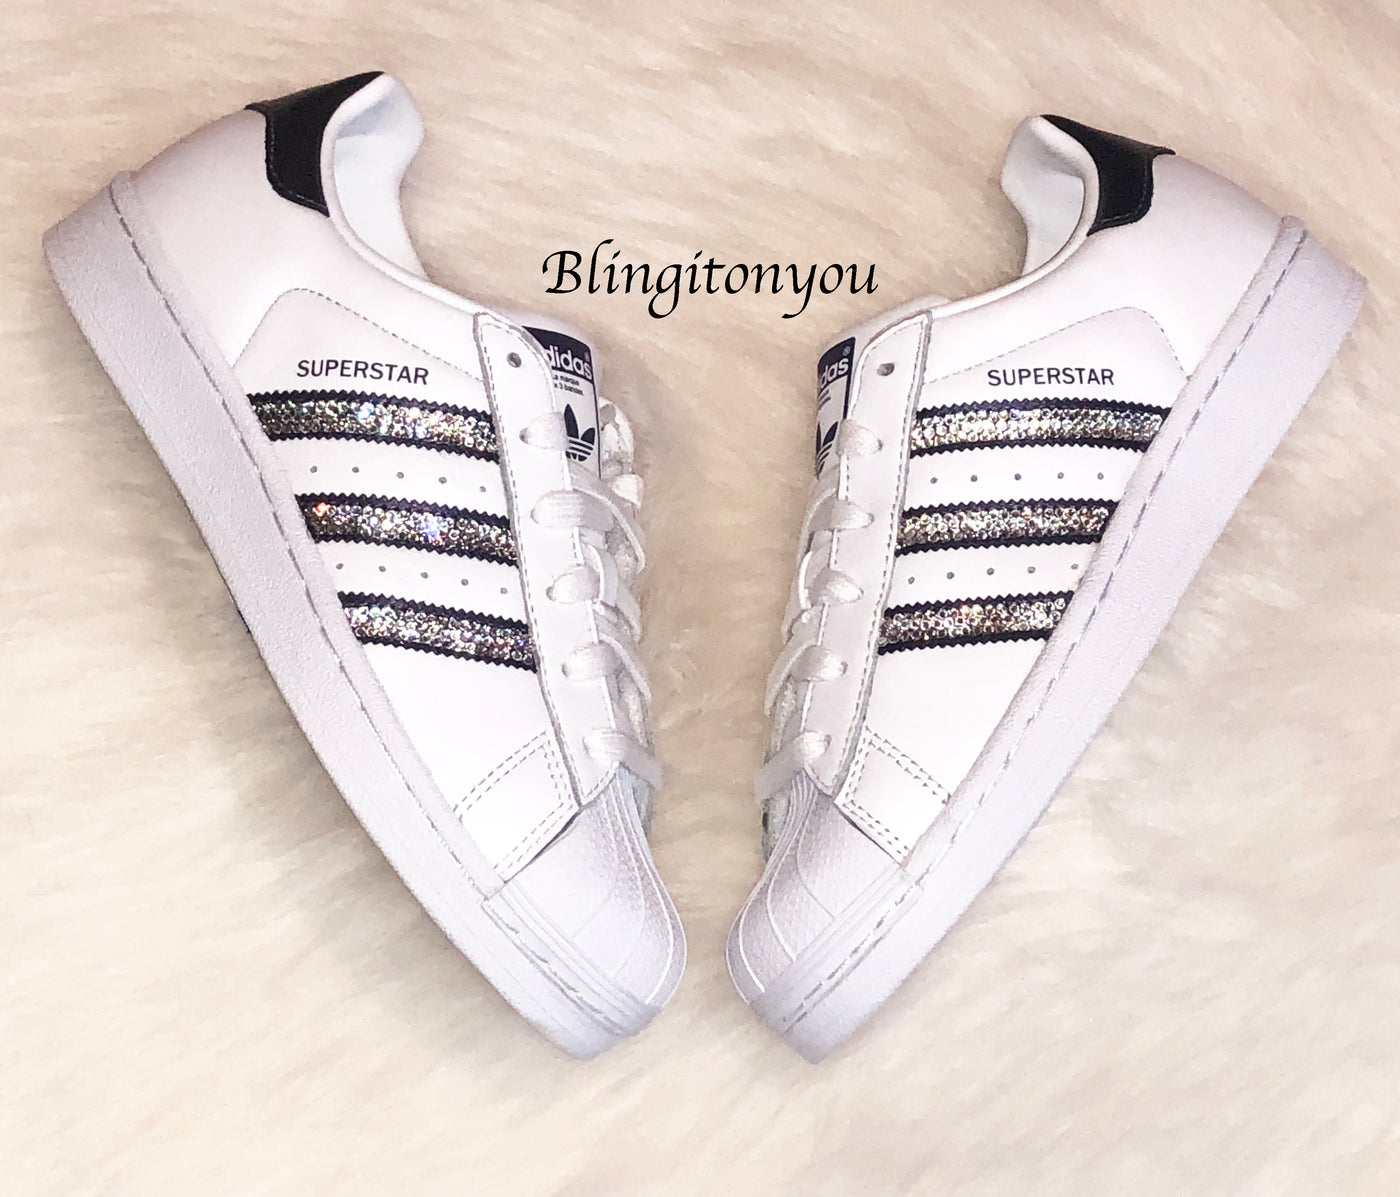 Adidas Superstar Shoes Women's White Black Stripes Customized with Black Swarovski® Crystals Brand New in Box Authentic Adidas Superstar